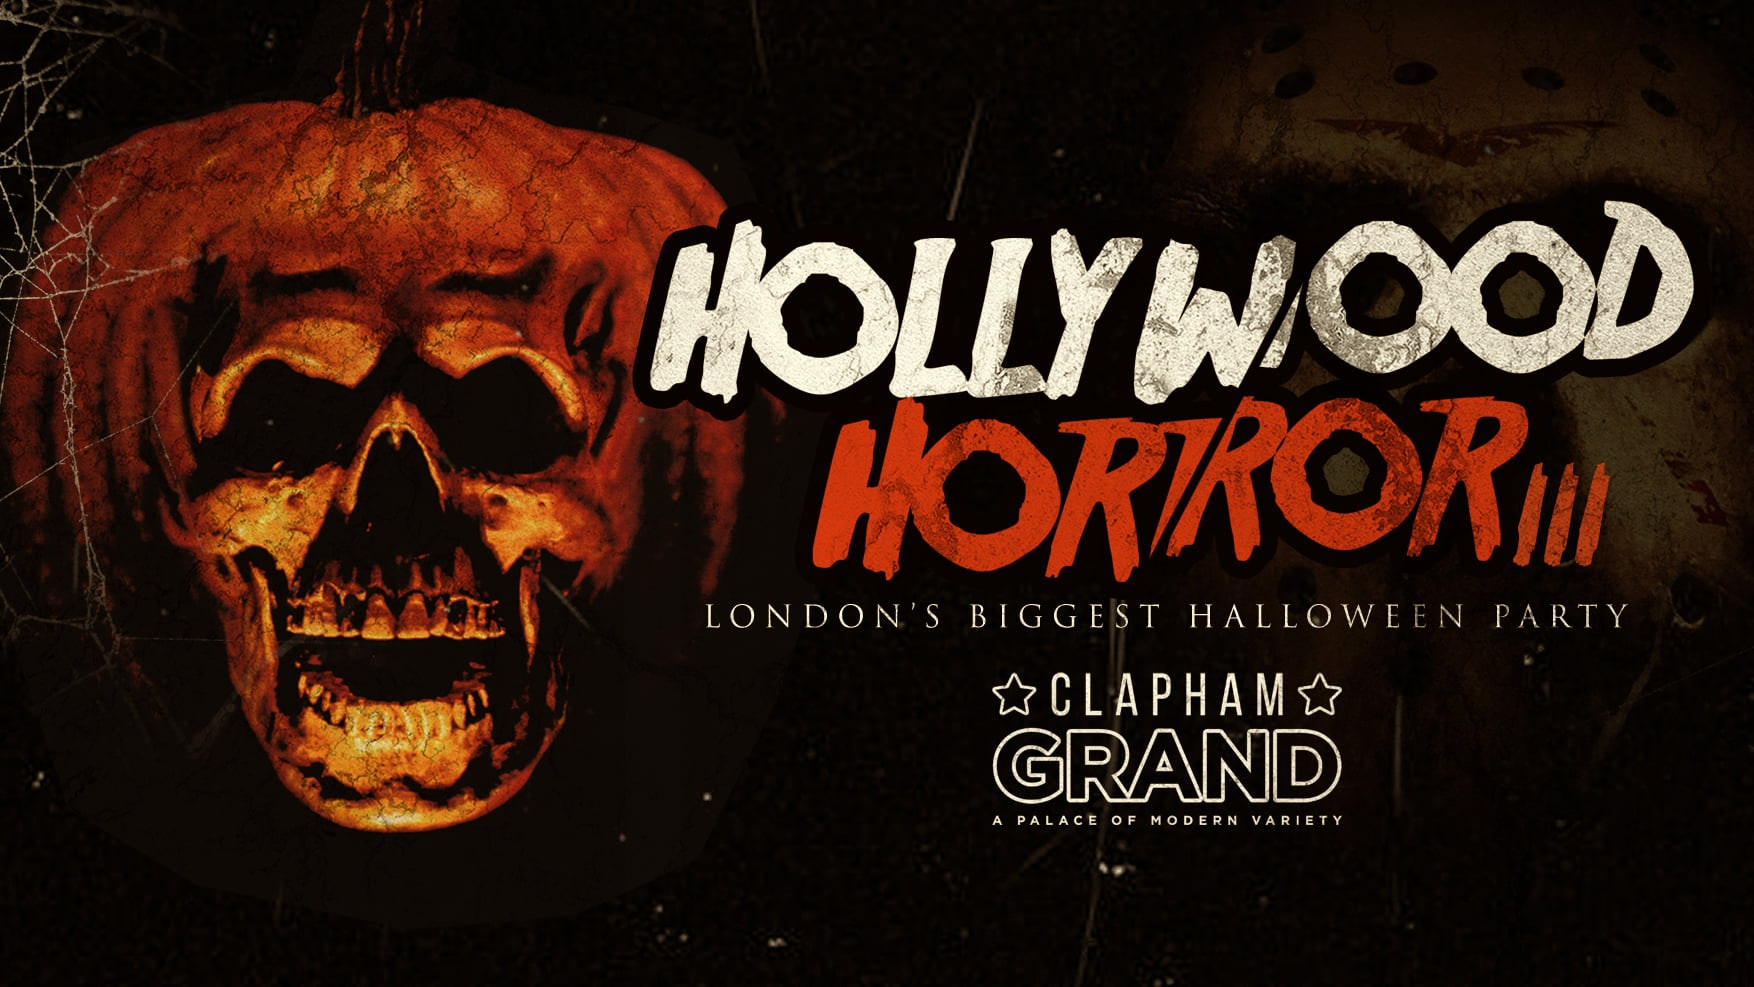 Hollywood Horror Halloween at The Grand Clapham 🎃